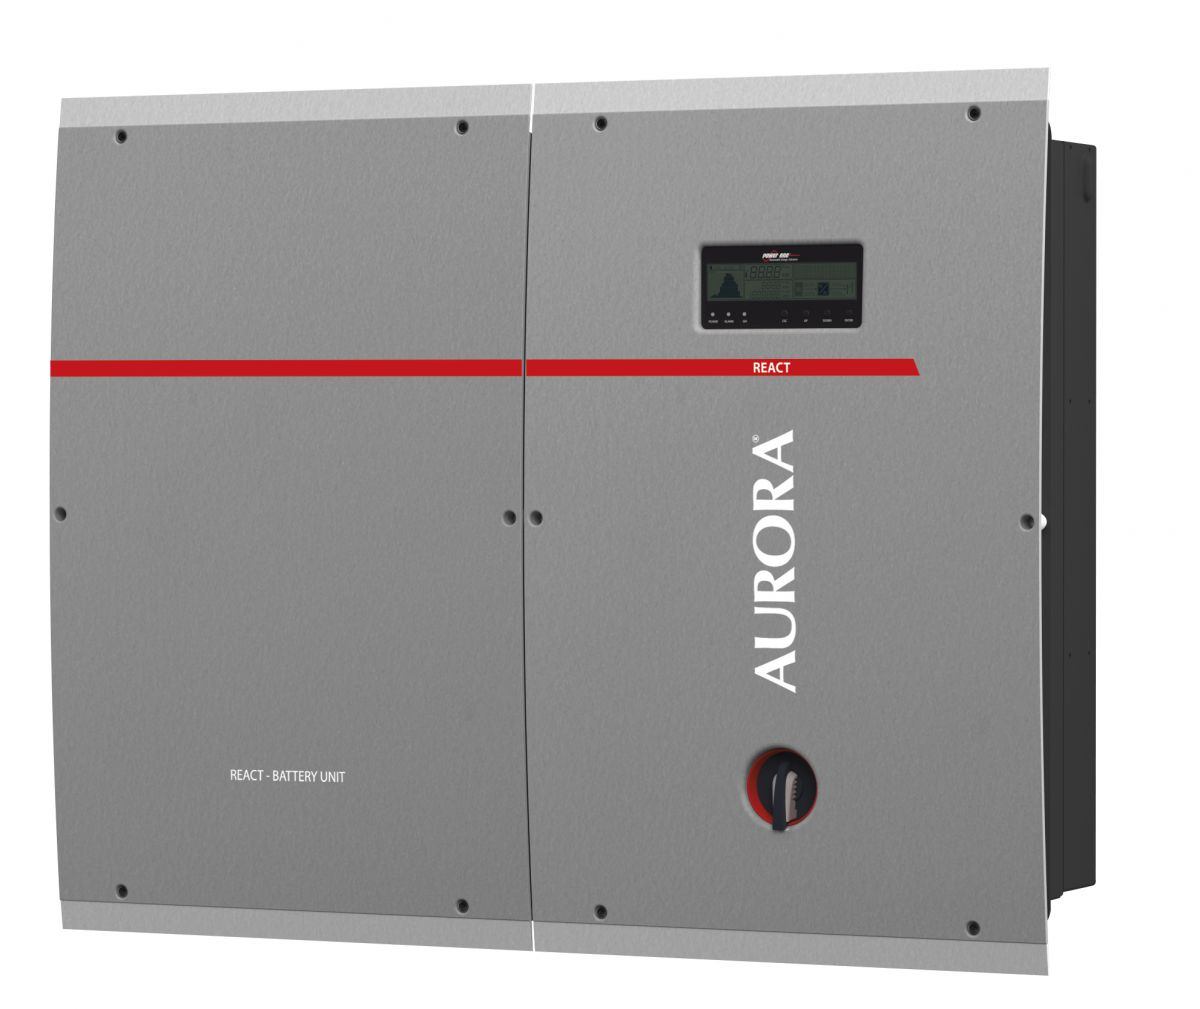 REACT energy storage system, with Aurora inverter. Photo credit: Power-One